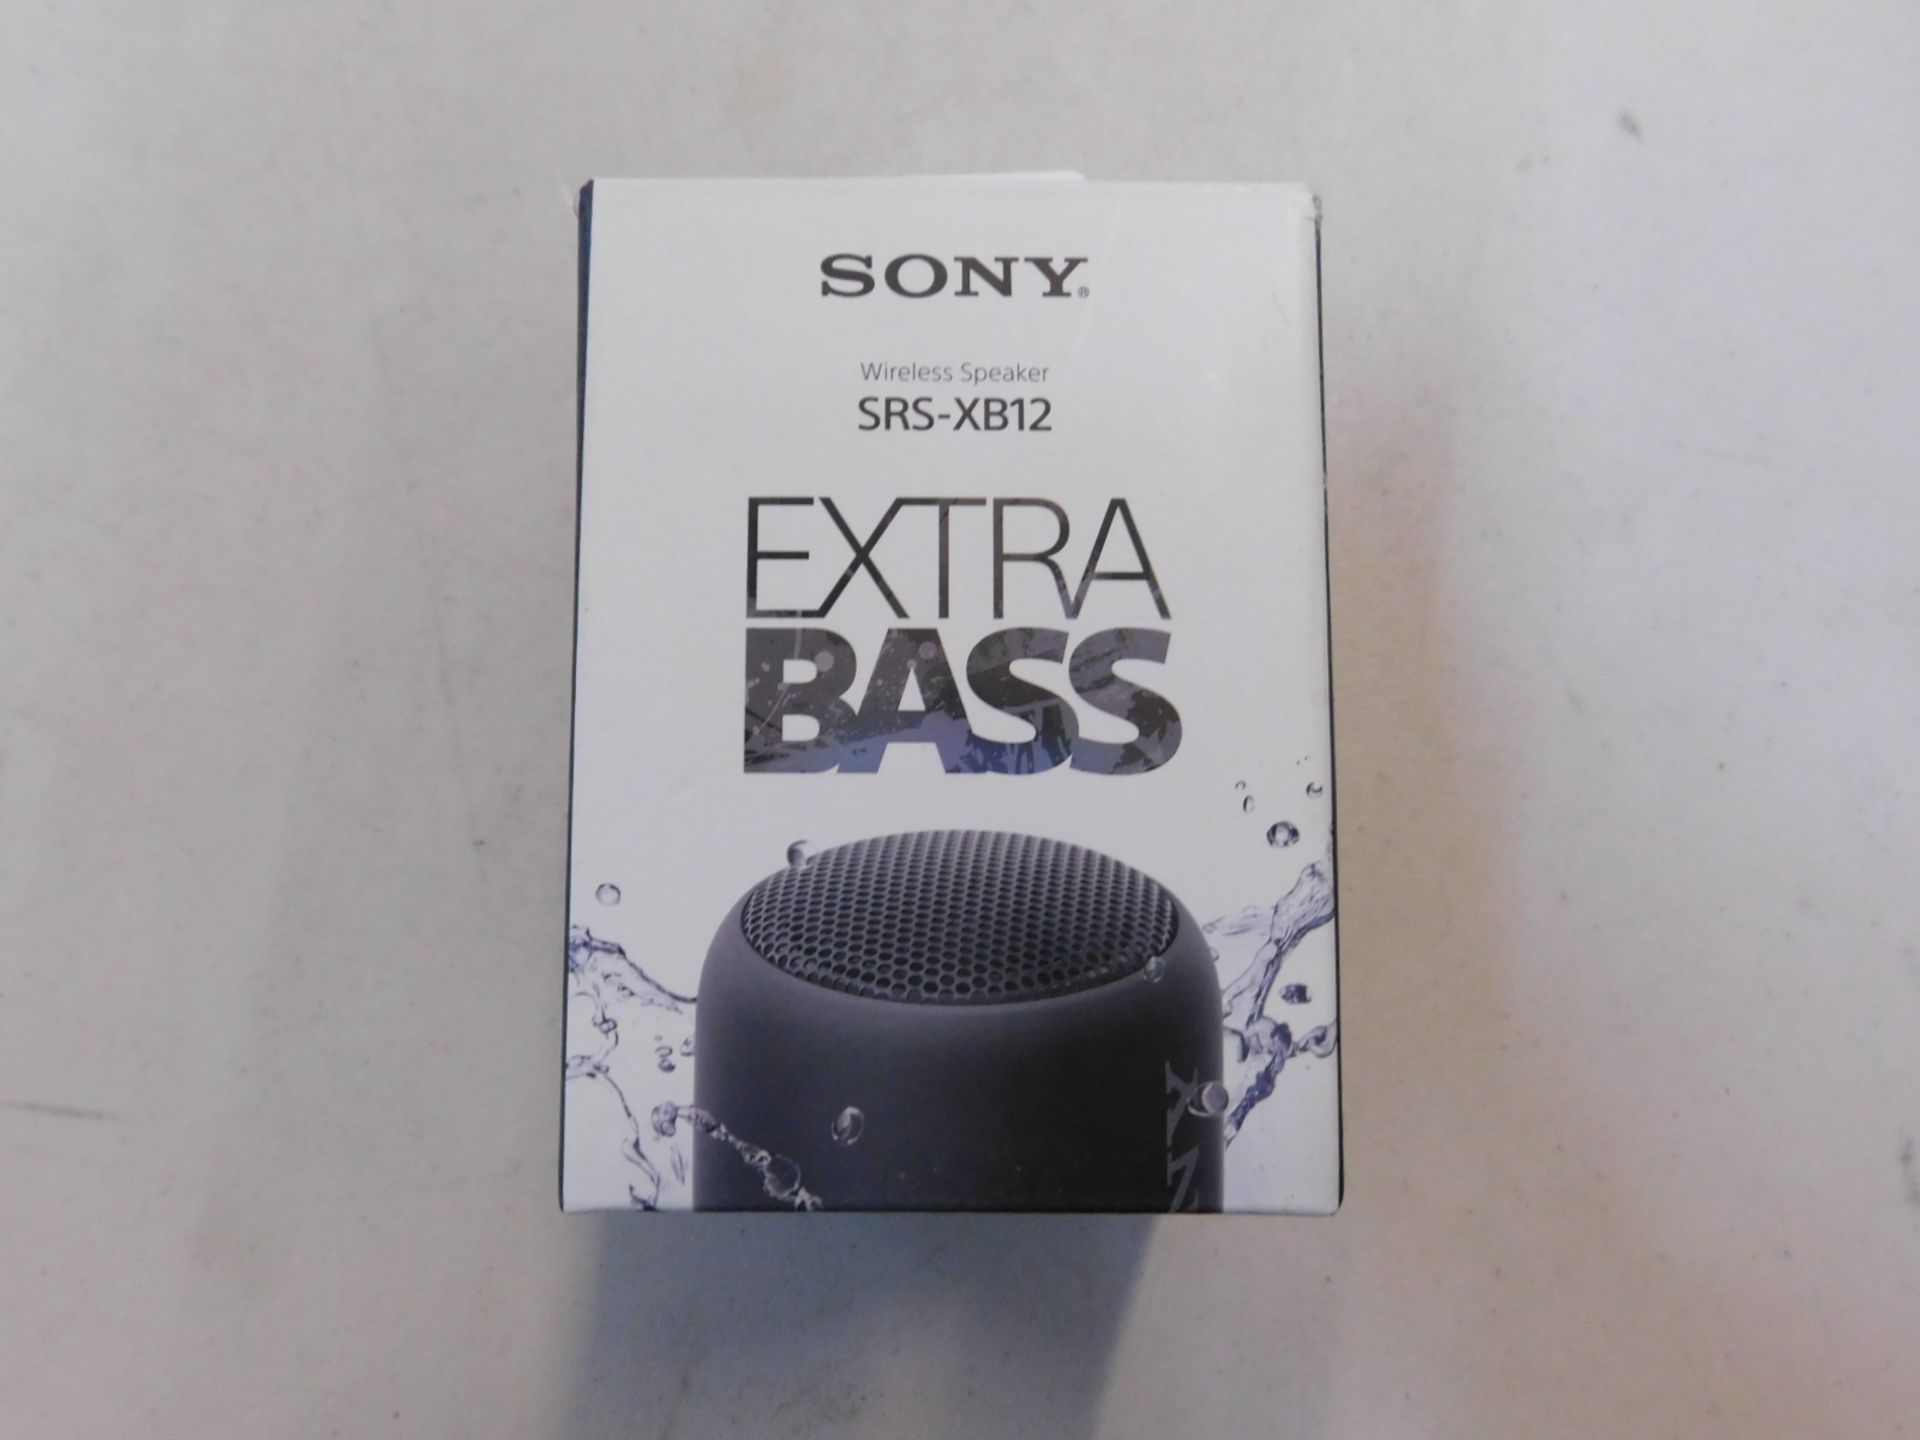 1 BOXED SONY SRS-XB12 EXTRA BASS WIRELESS BLUETOOTH SPEAKER RRP £59.99